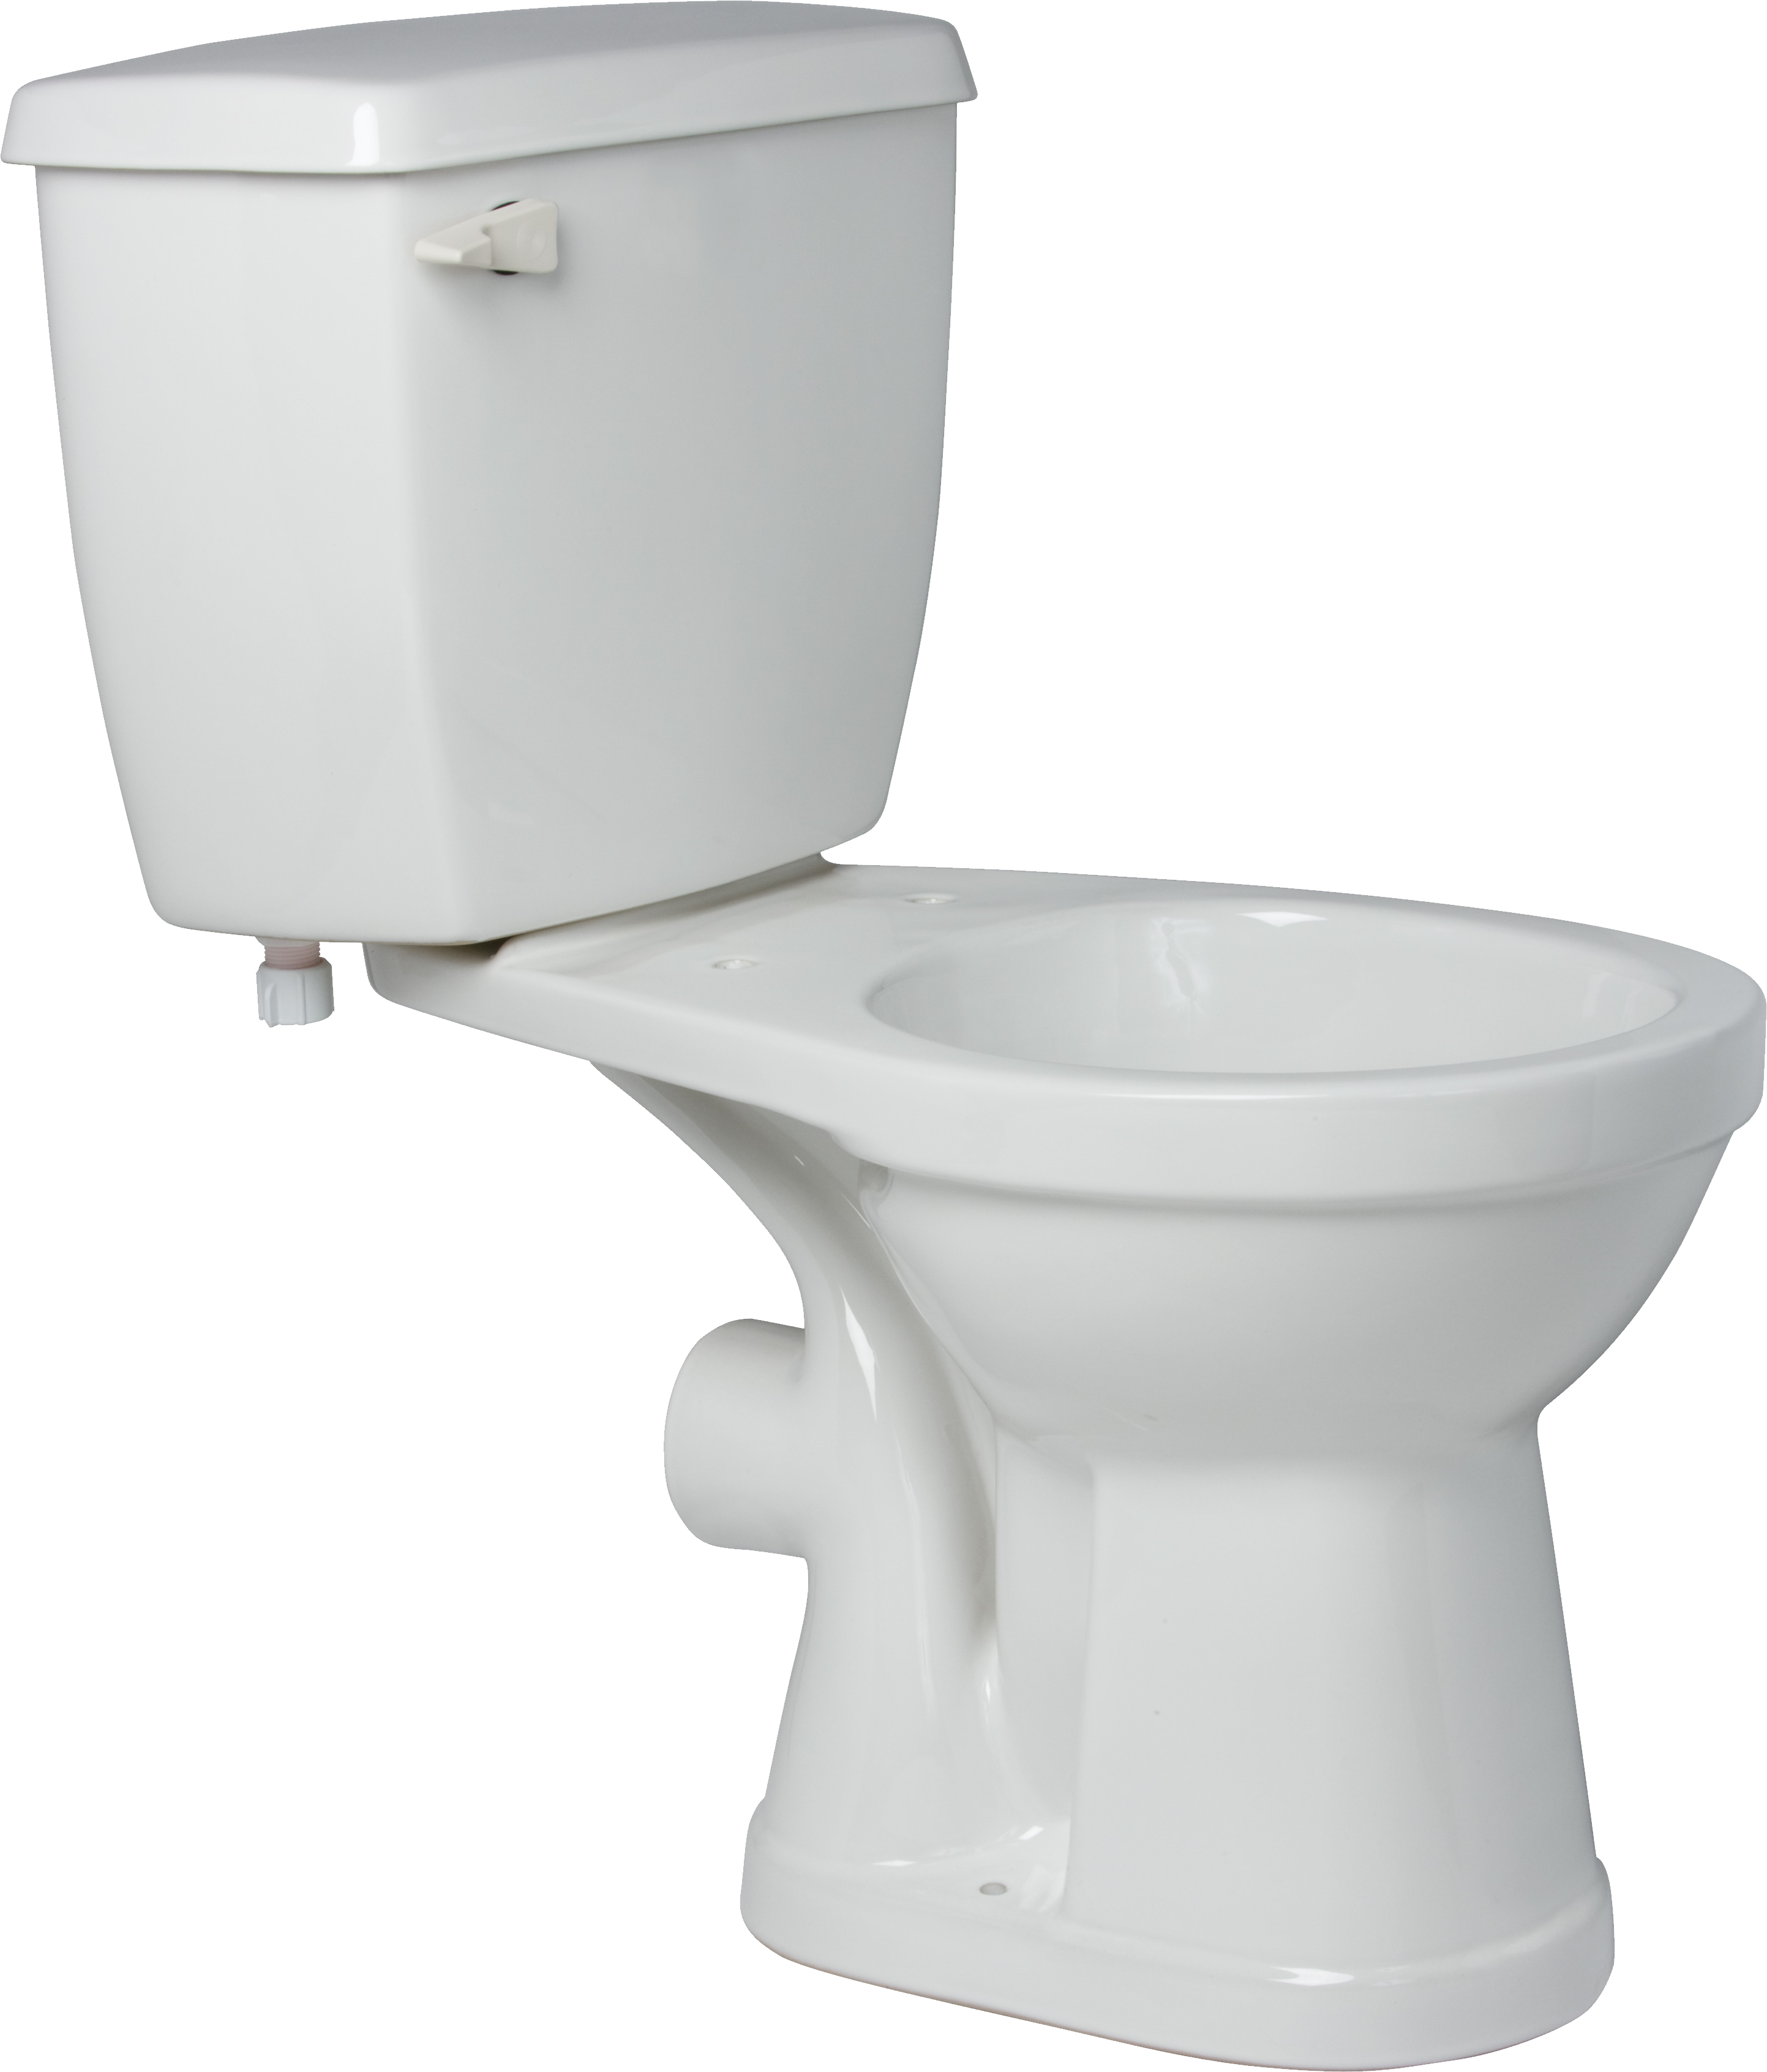 Toilet png image purepng. Study clipart seat work